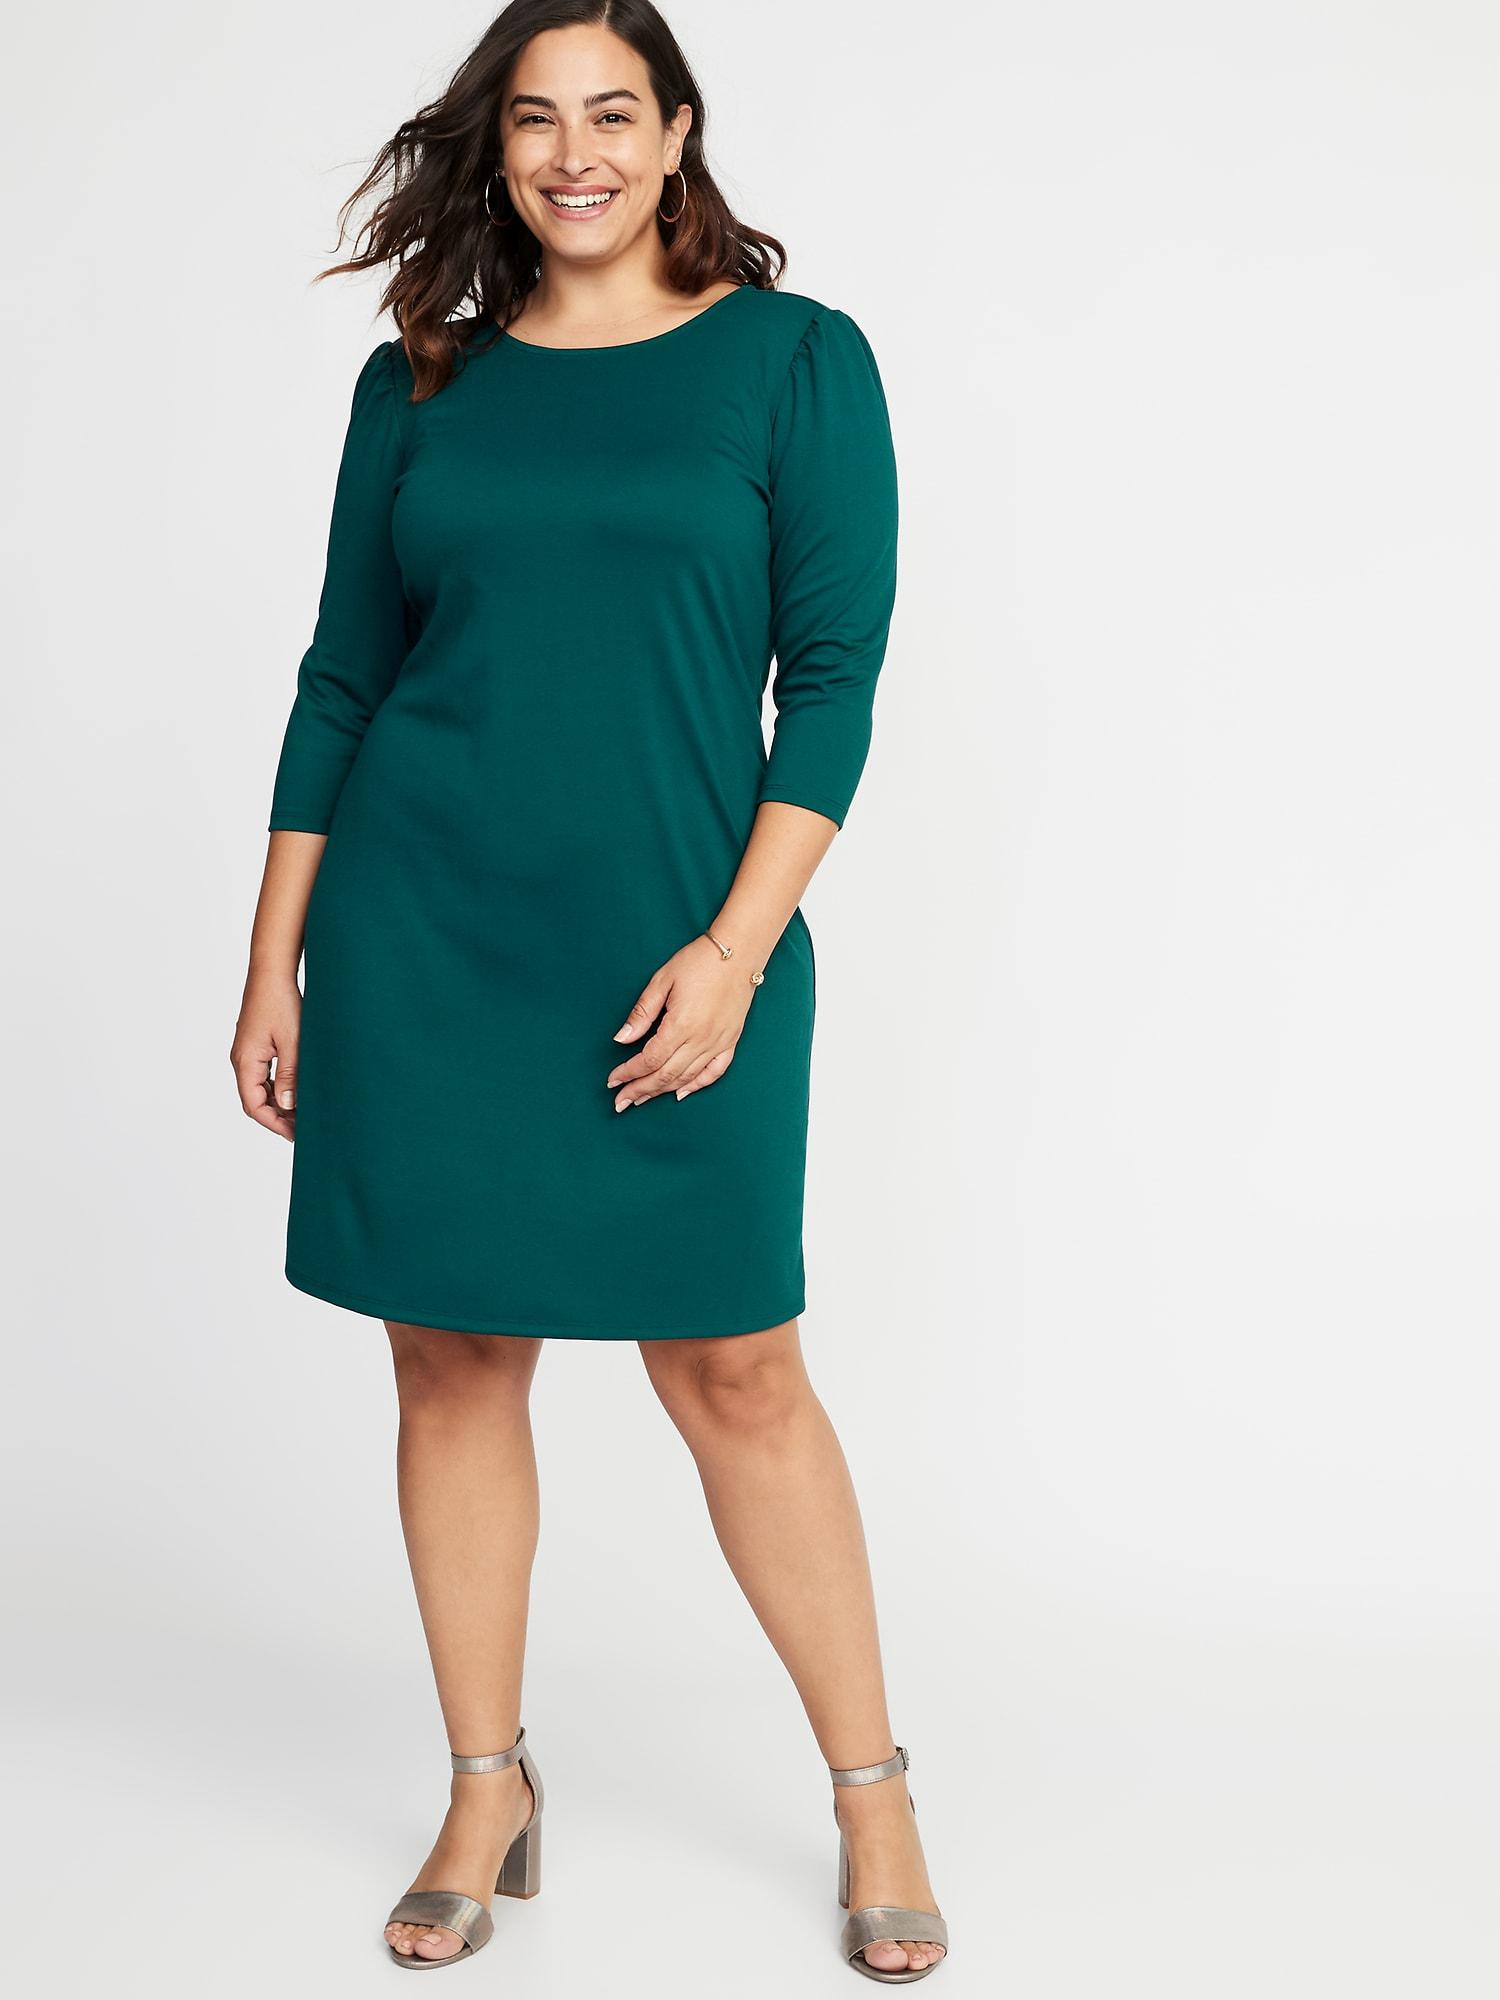 Lyst - Old Navy Plus-size Ponte Knit Shift Dress in Green